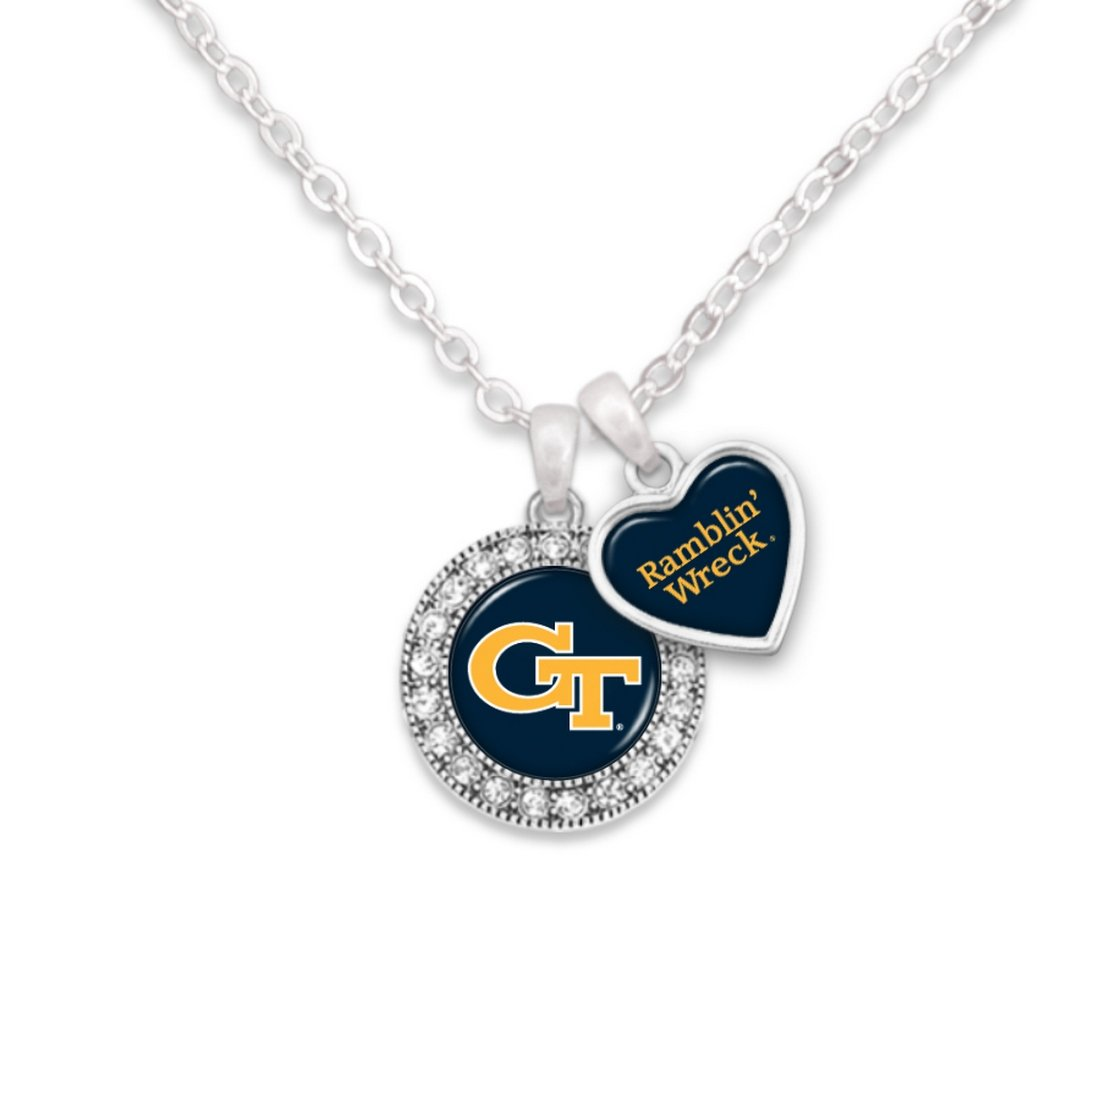 FTH Georgia Tech Yellow Jackets Logo and a Heart Shaped Charm Necklace Featuring Team Slogan